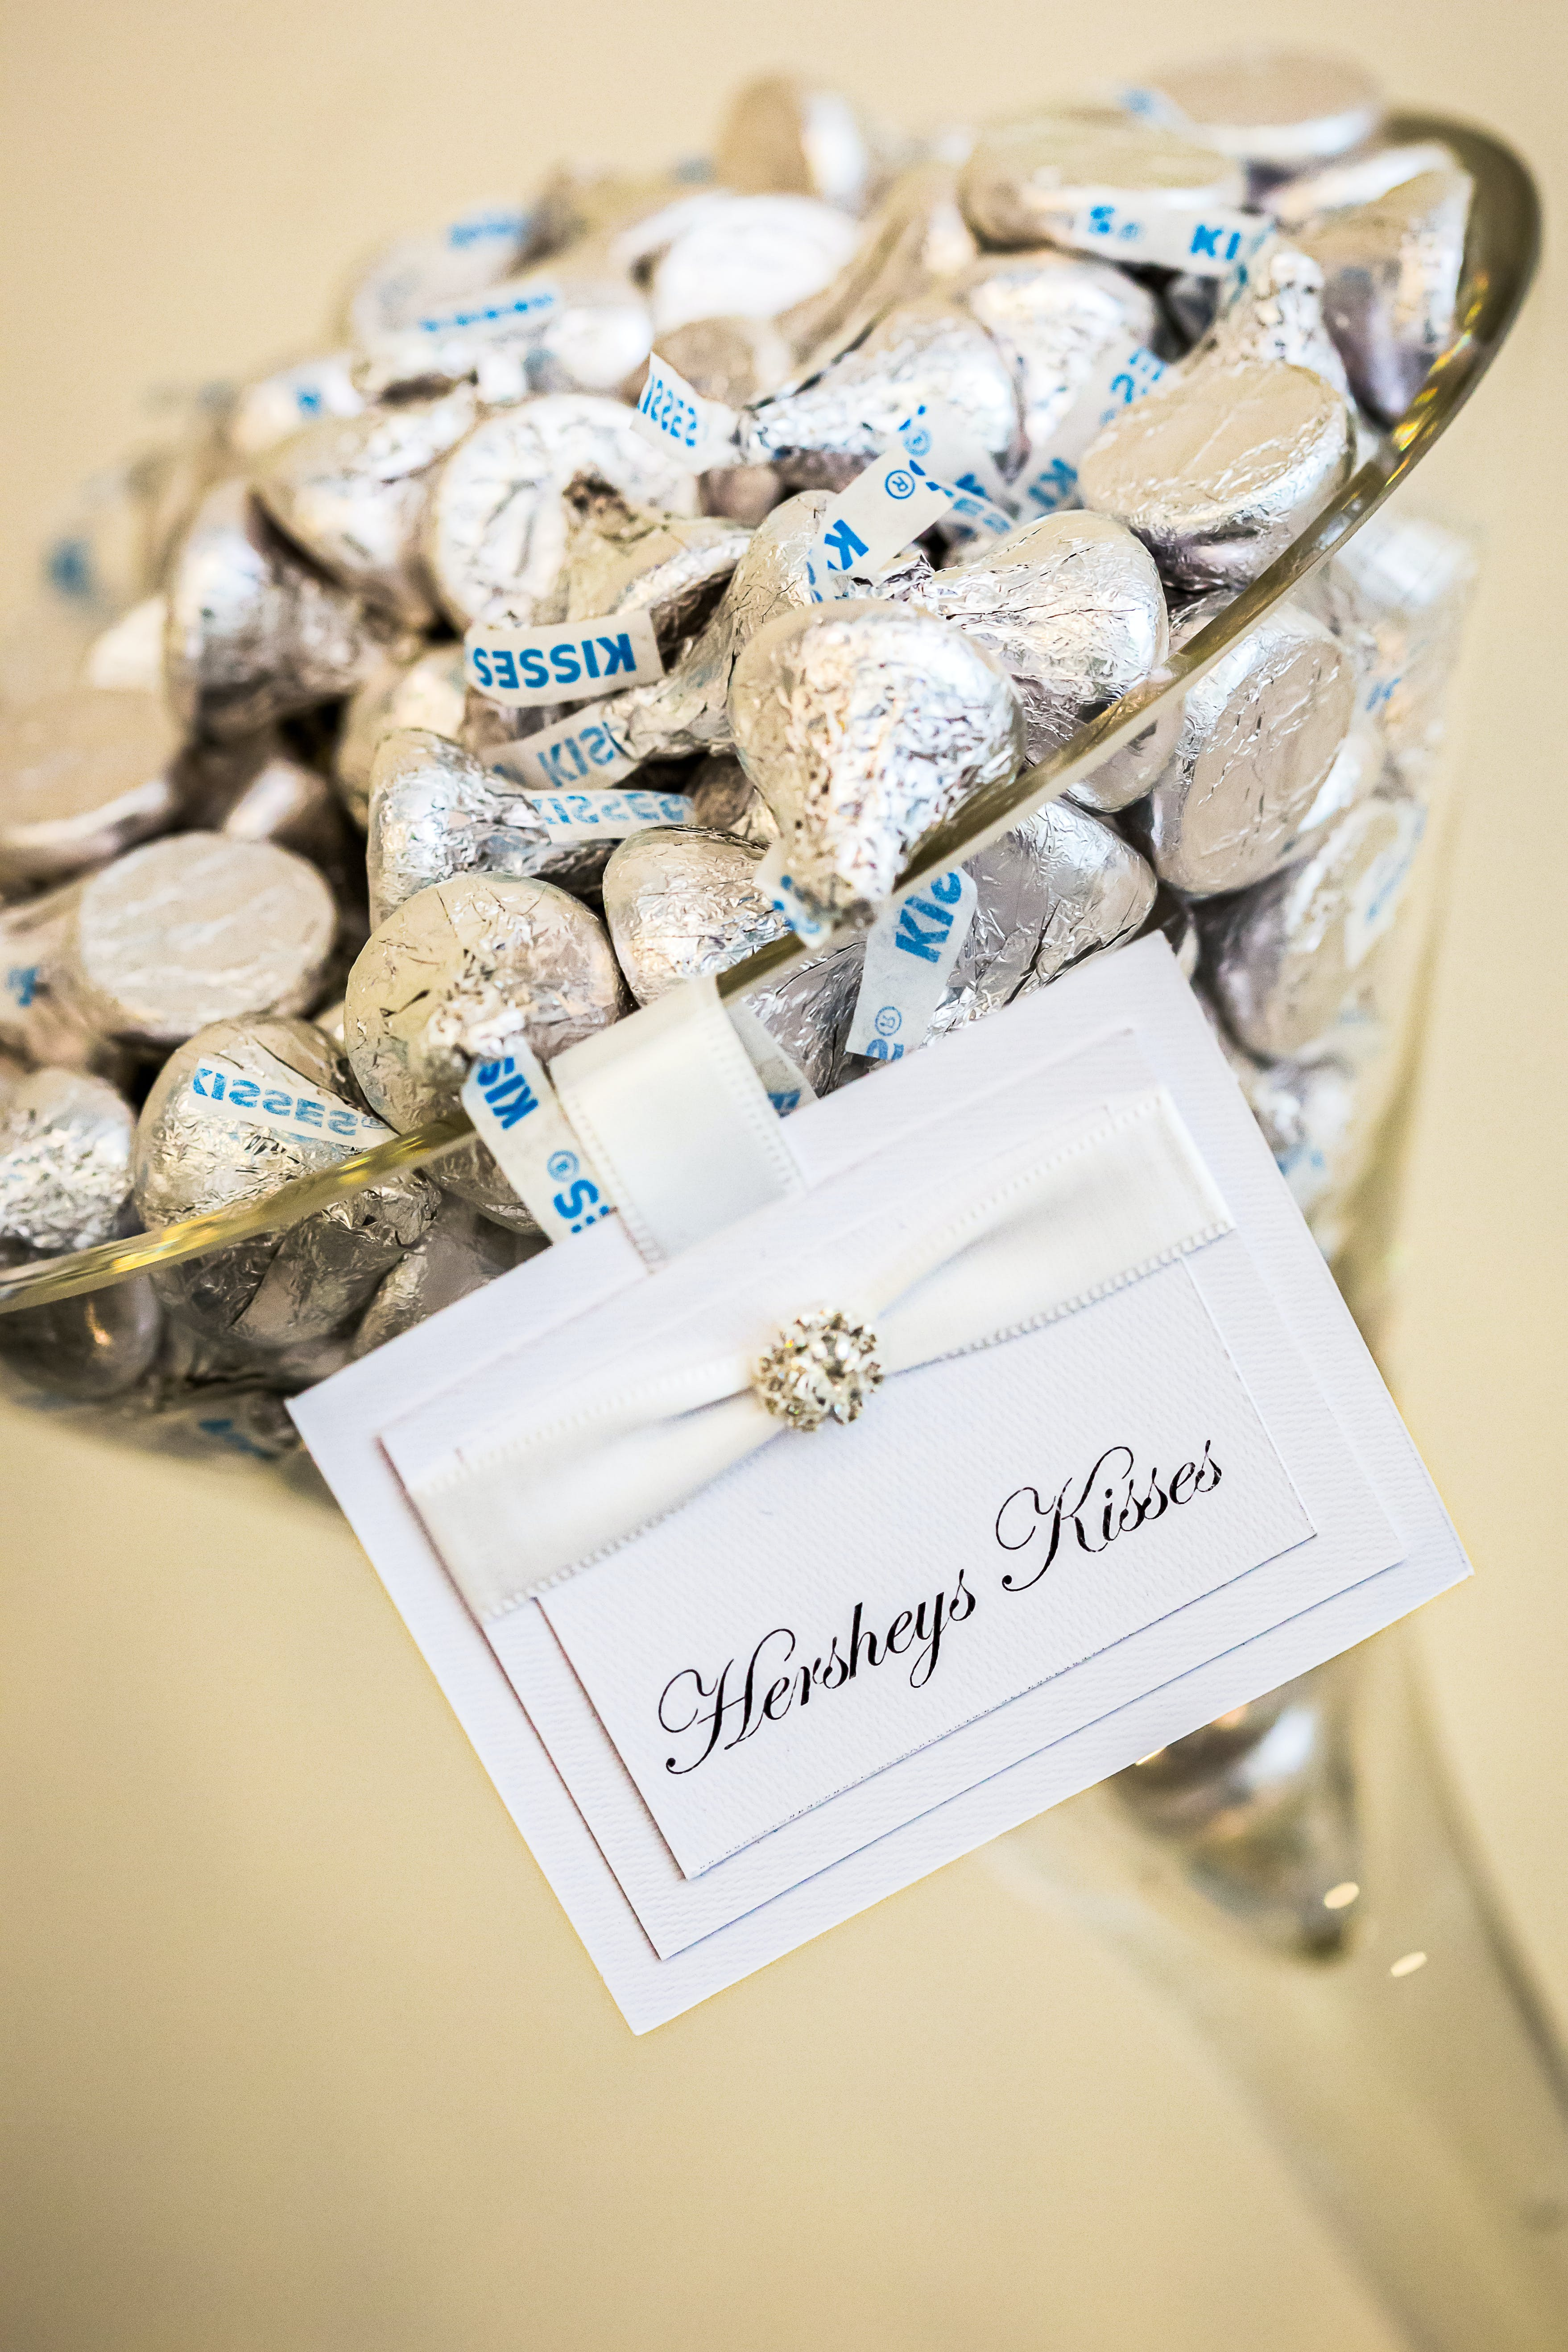 Hersheys Kisses on Glass Container